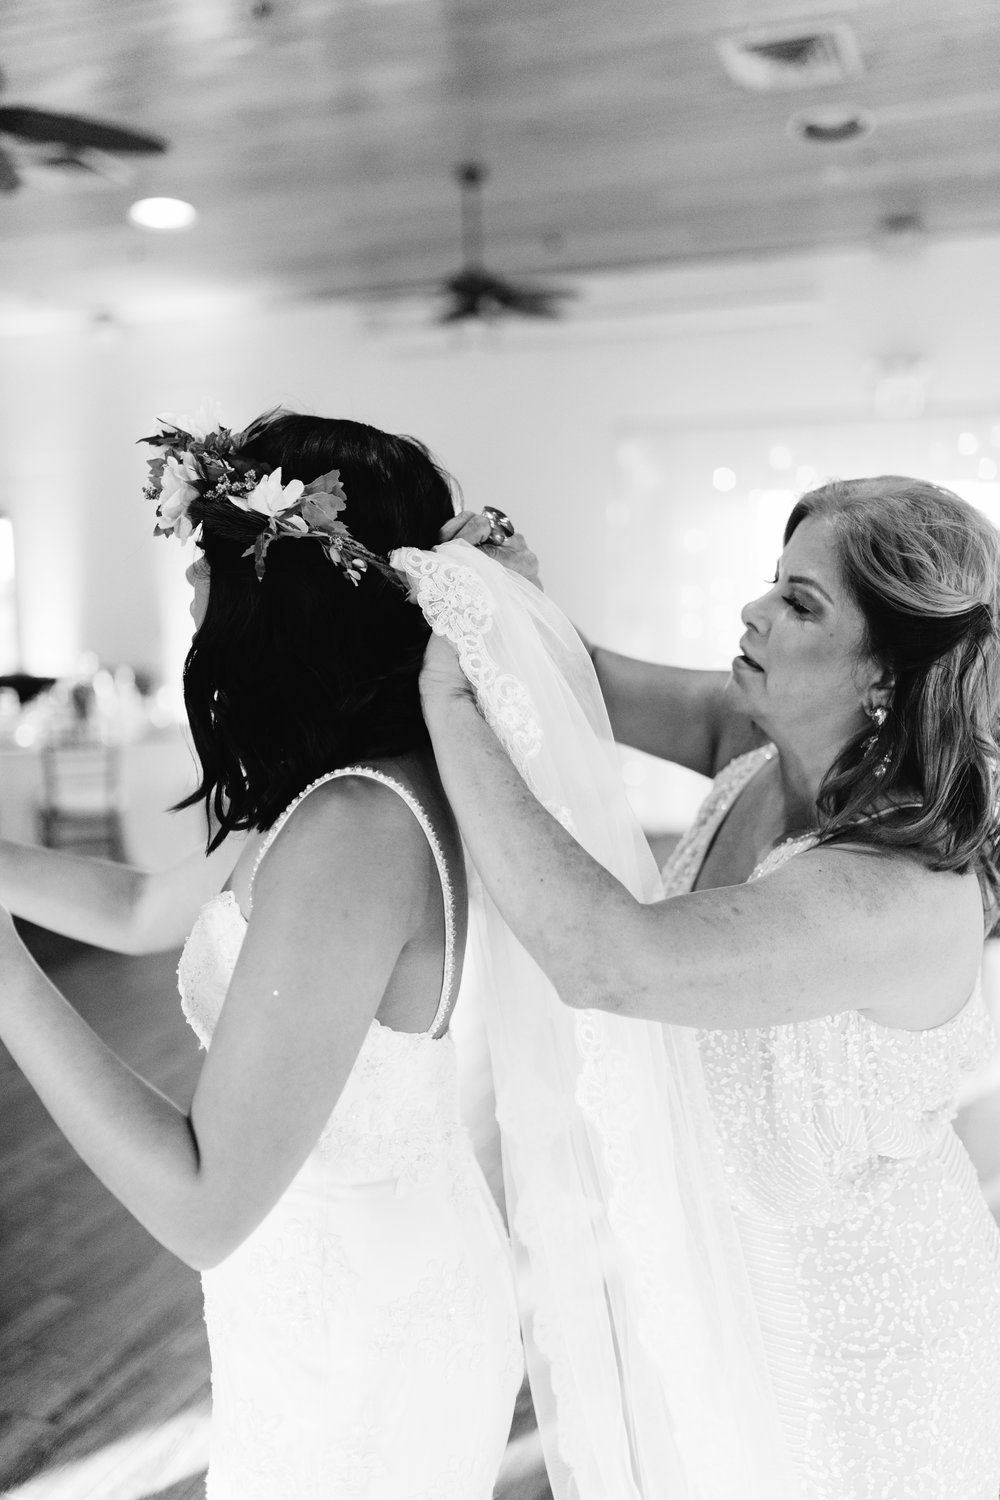 2017.05.23 Barbara and Mauricio Sales Port St Lucie Wedding (289 of 772).jpg